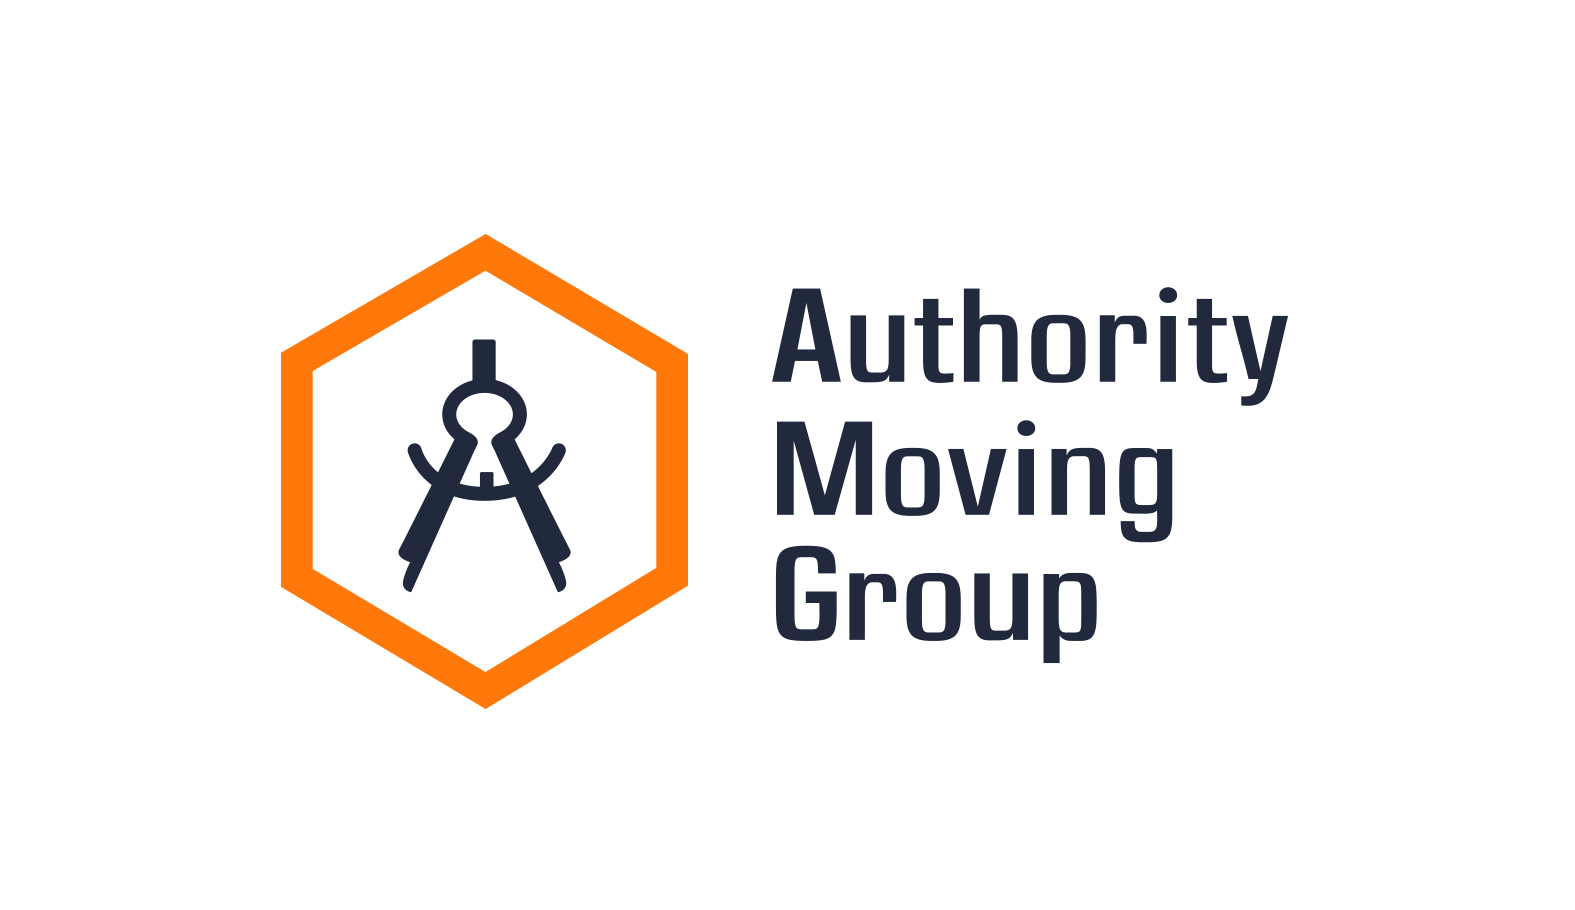 Authority Moving Group logo